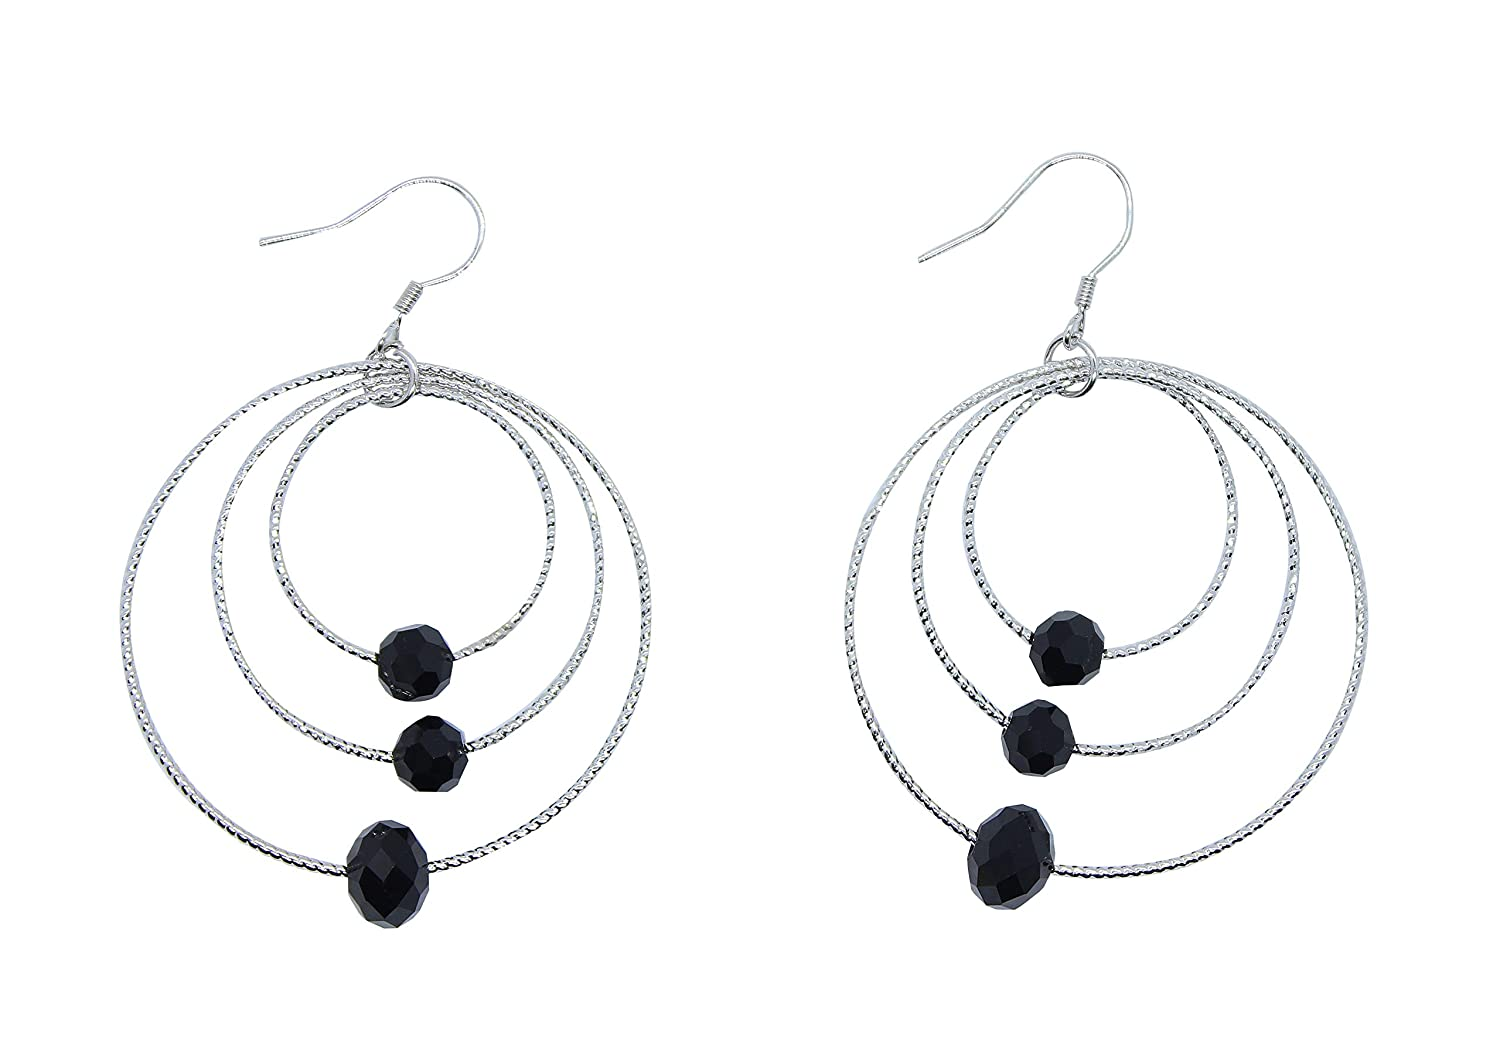 90028f43a Amazon.com: Goddess Area Silver Lightweight Paddle Back Hoop Earrings(Round,Black):  Home & Kitchen